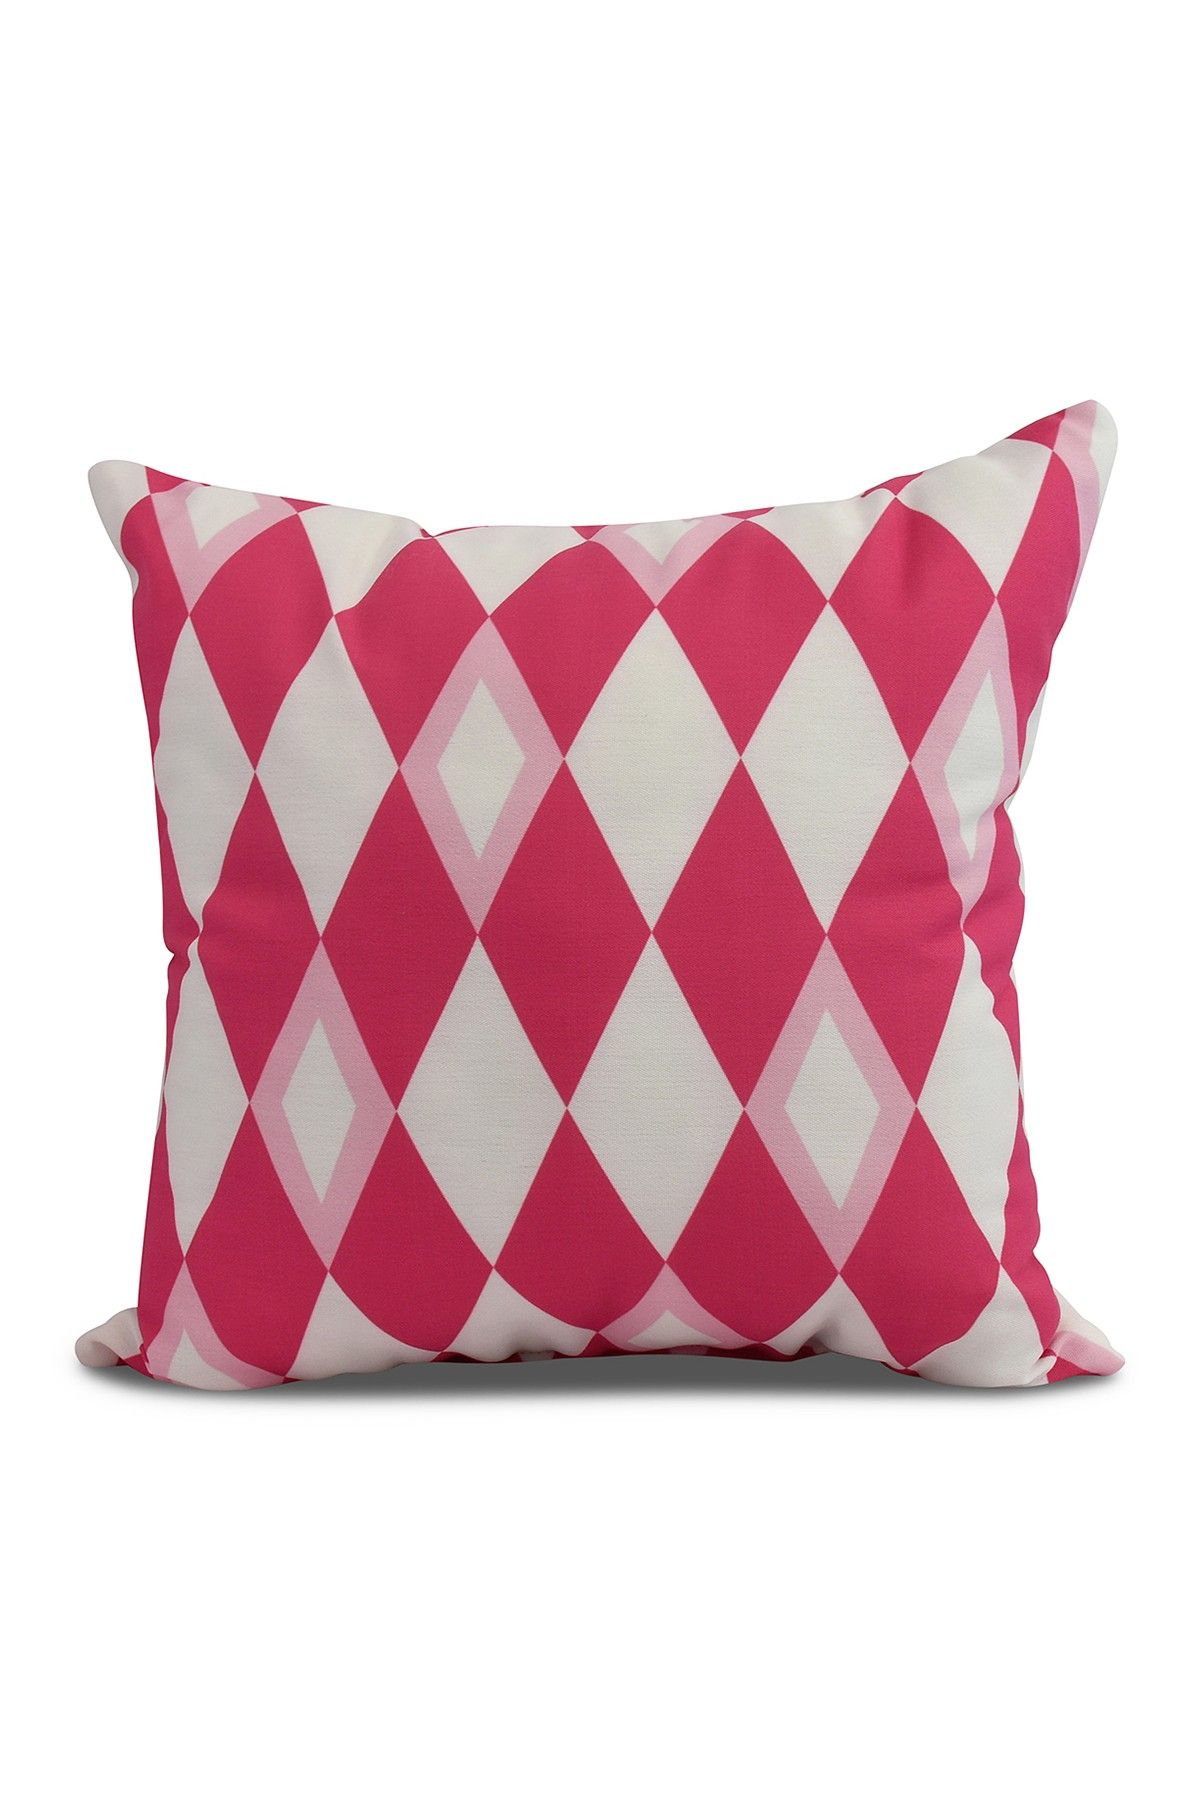 E By Design Harlequin Geometric Print Pillow - Pink/Fushcia | Bed ...